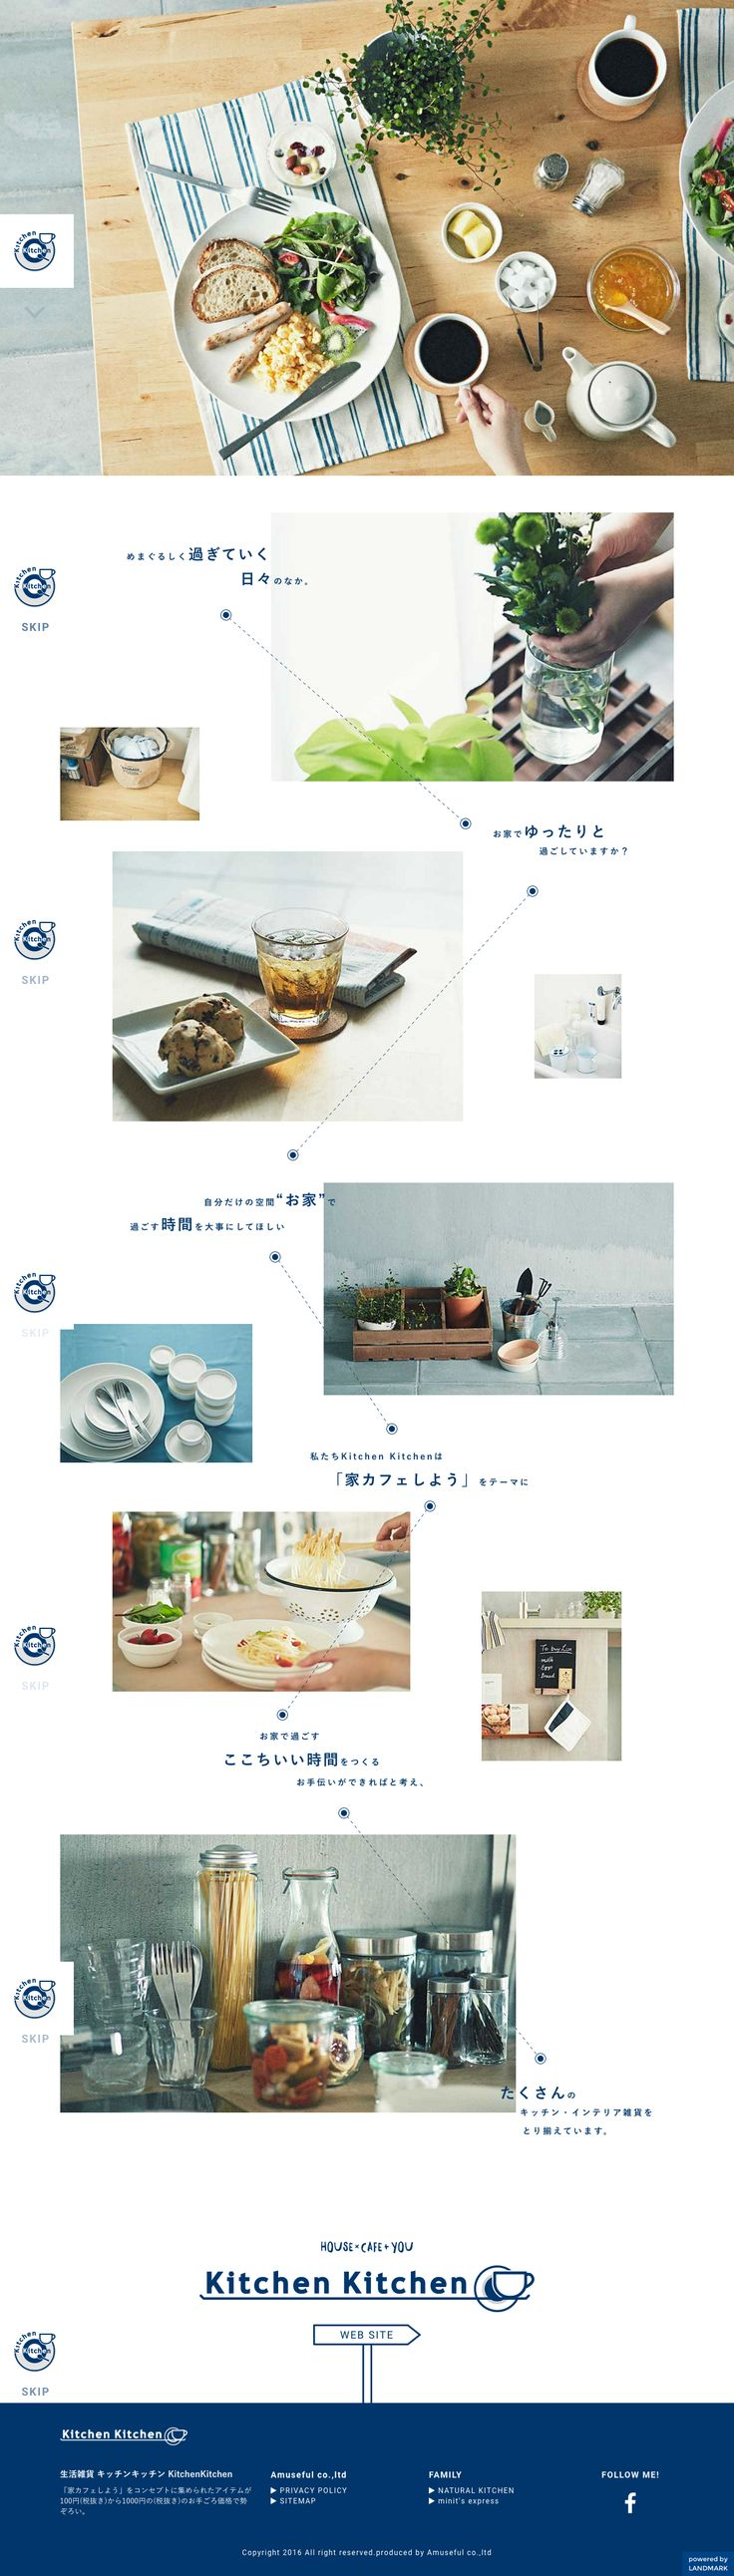 http://www.kitchen-kitchen.jp/